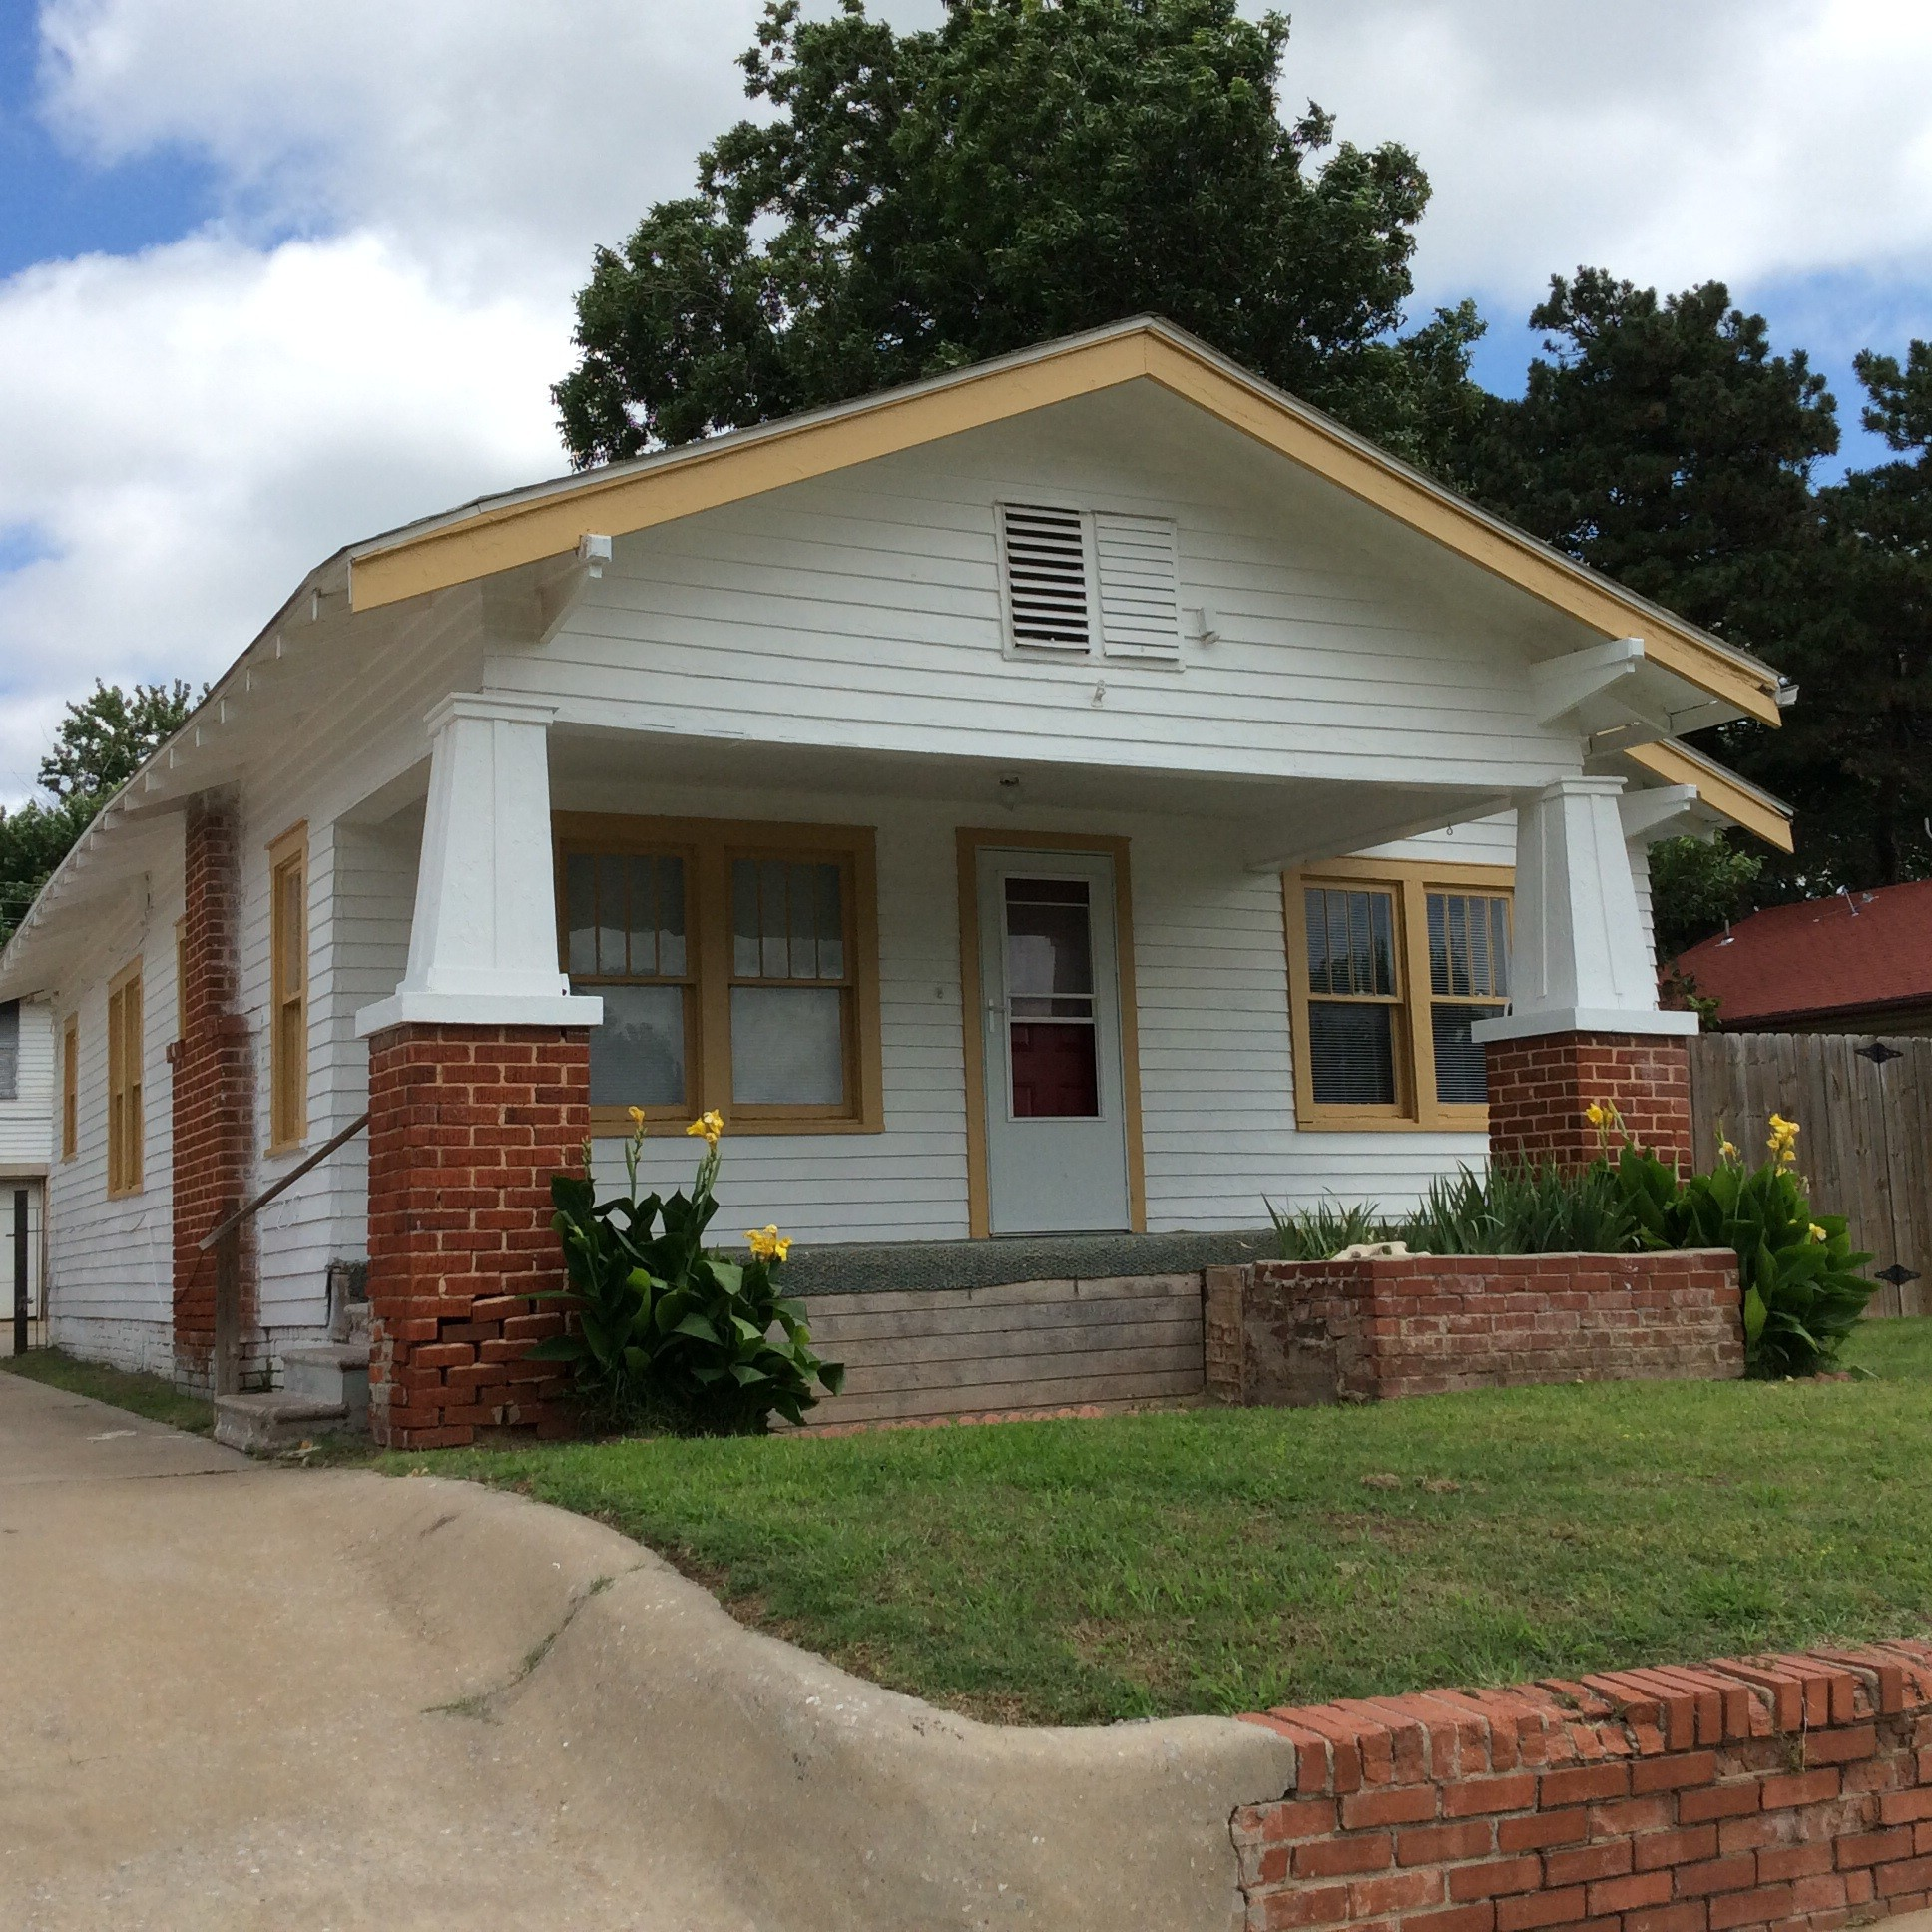 Section 8 Homes For Rent In Okc. 74 [ Section 8 Housing In